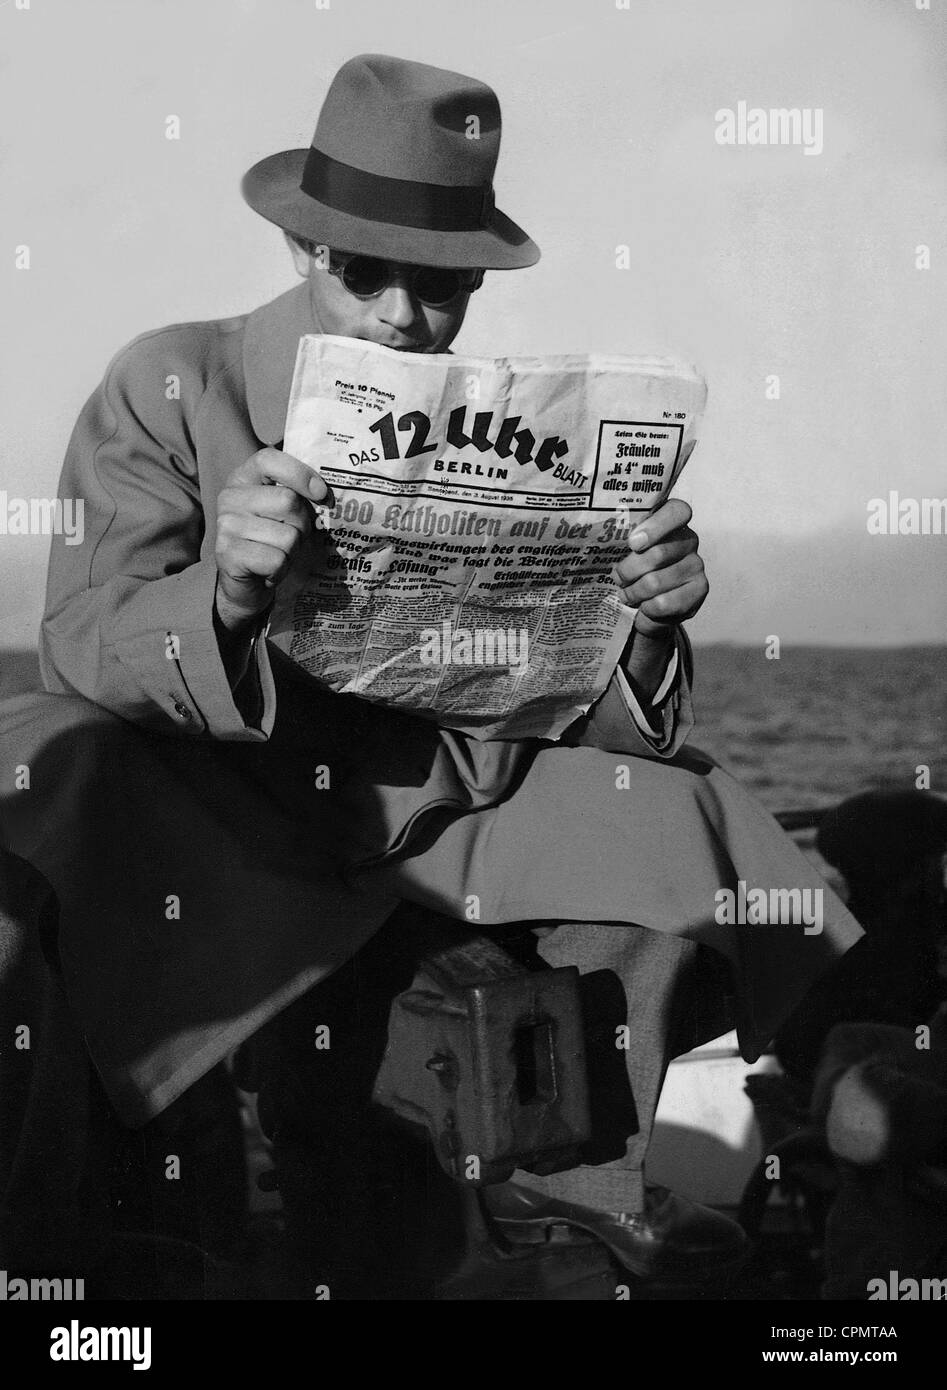 Man reading the newspaper '12 Uhr Blatt' - Stock Image